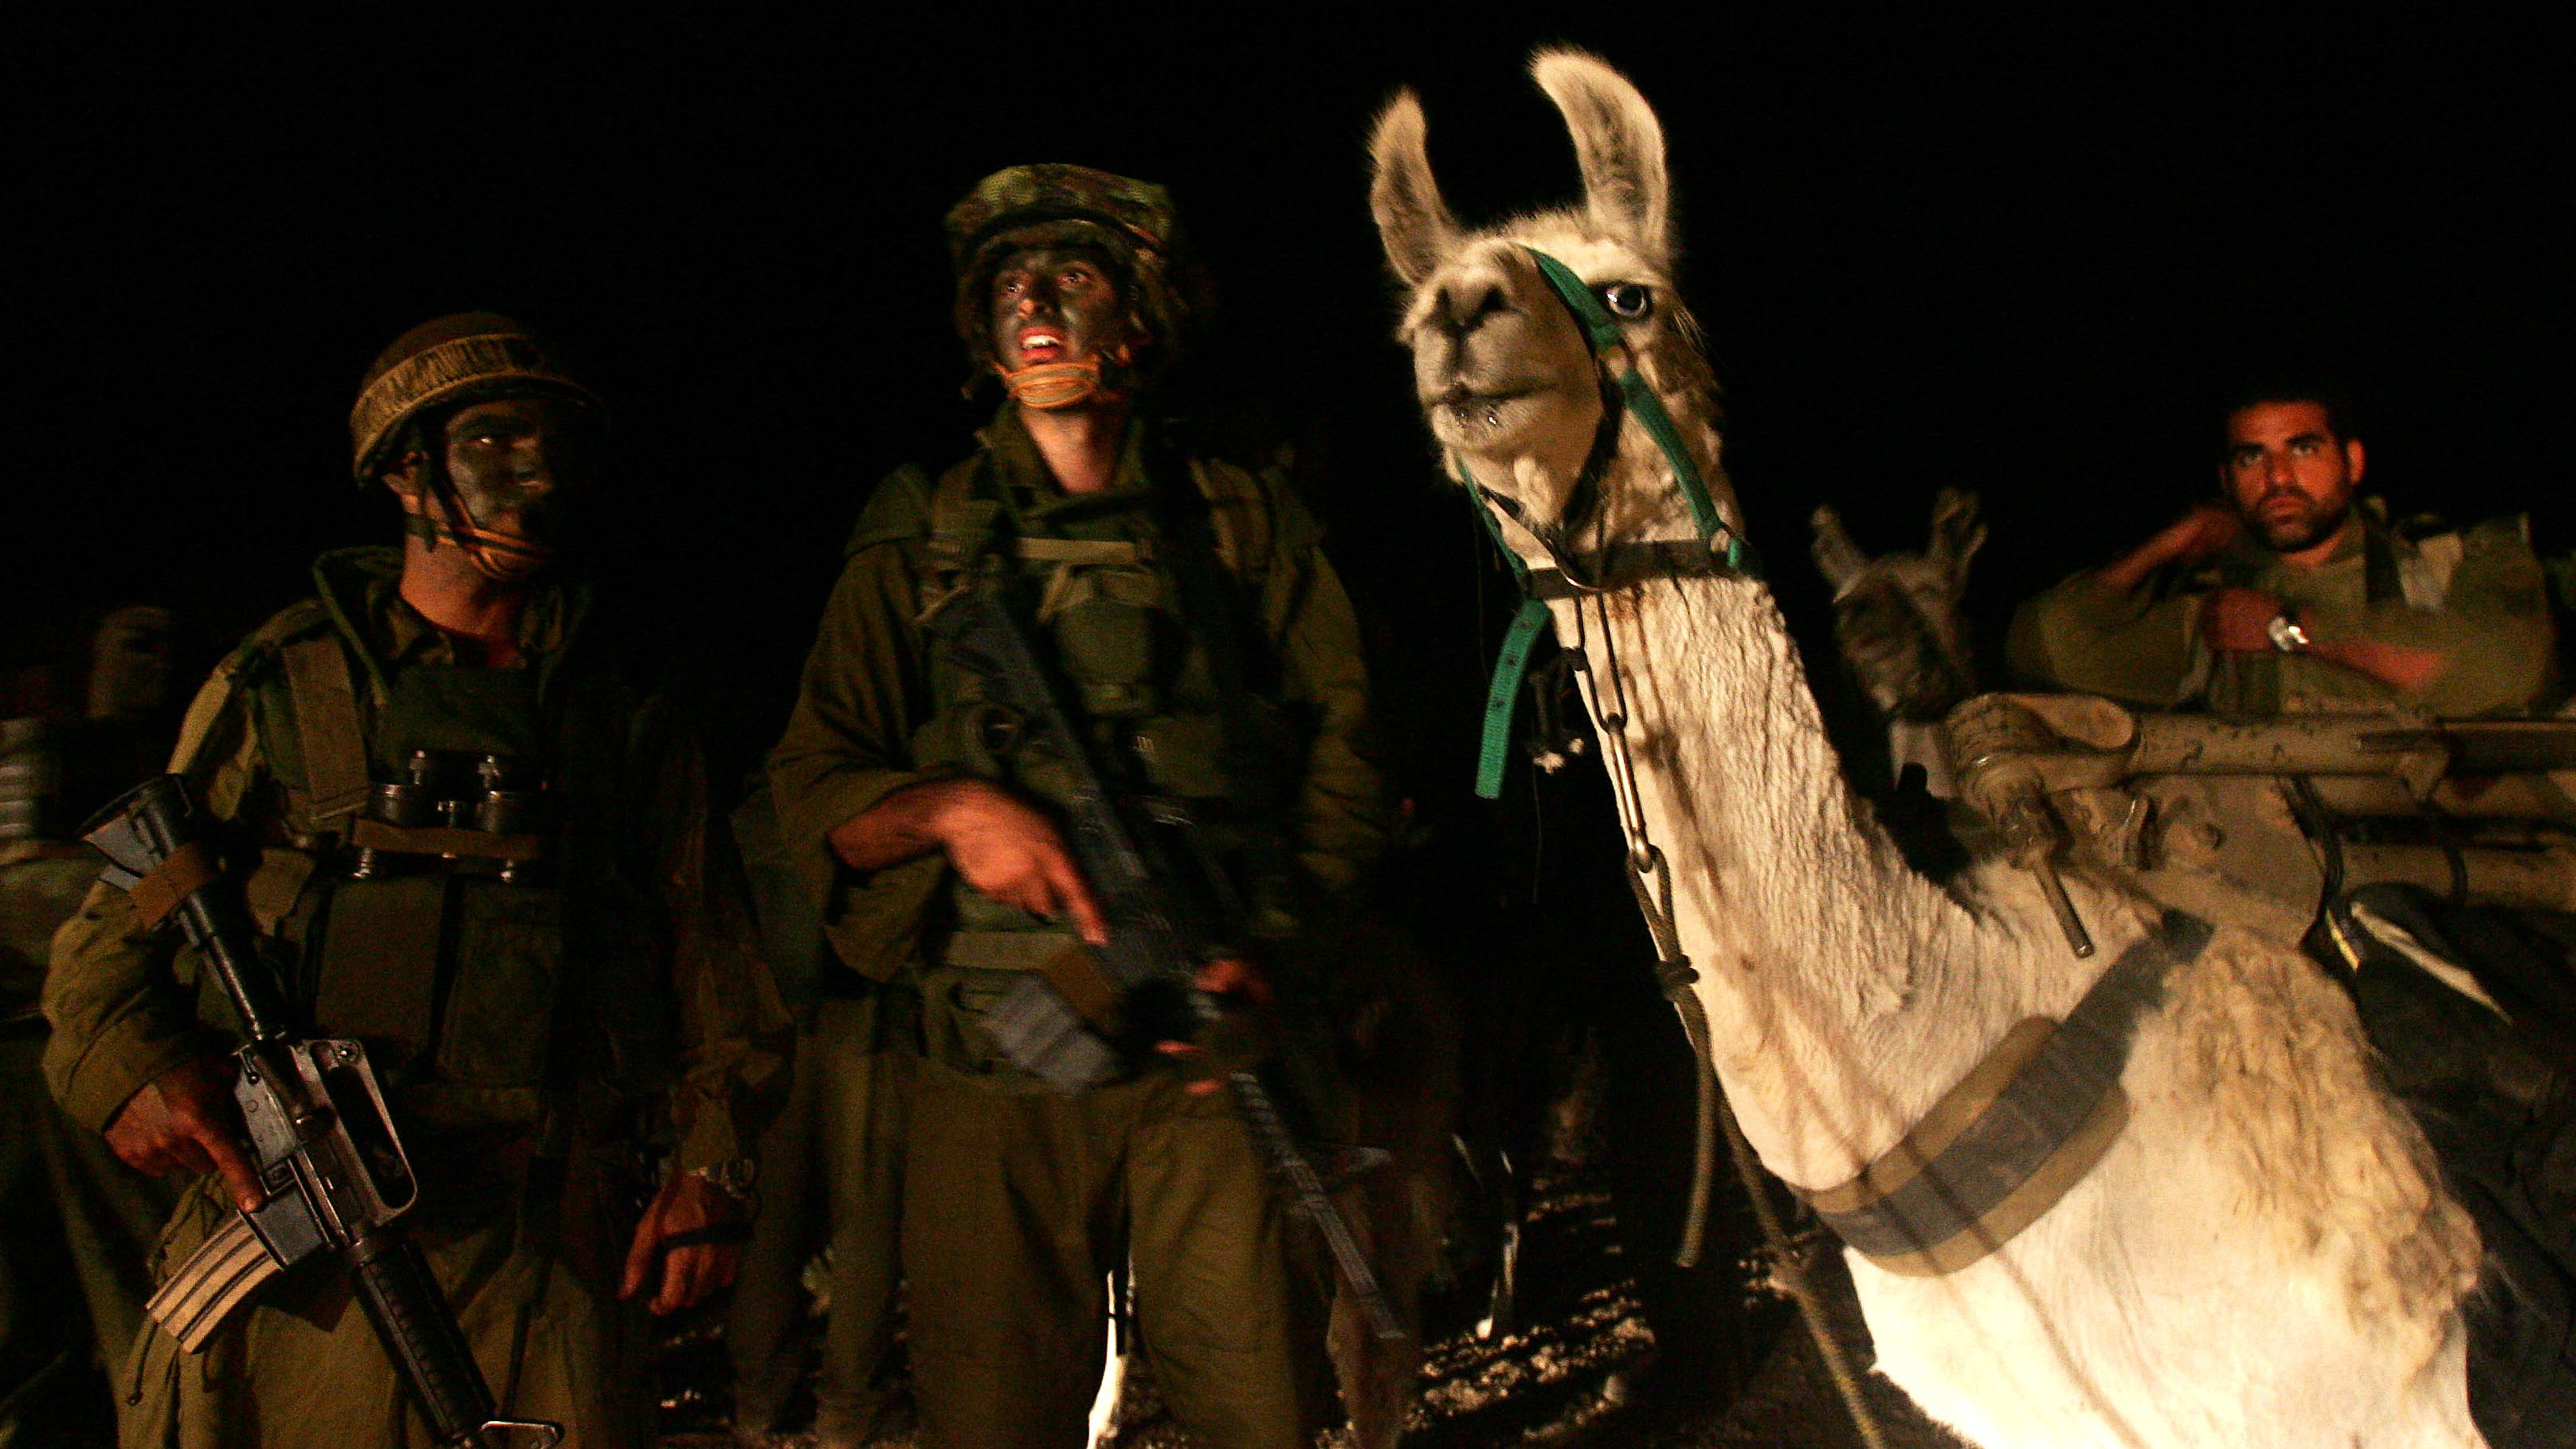 Israeli special forces with their llamas wait to cross the Israel-Lebanon border, late August 1, 2006. REUTERS/Ronen Zvulun (ISRAEL) - RTR1G0BZ